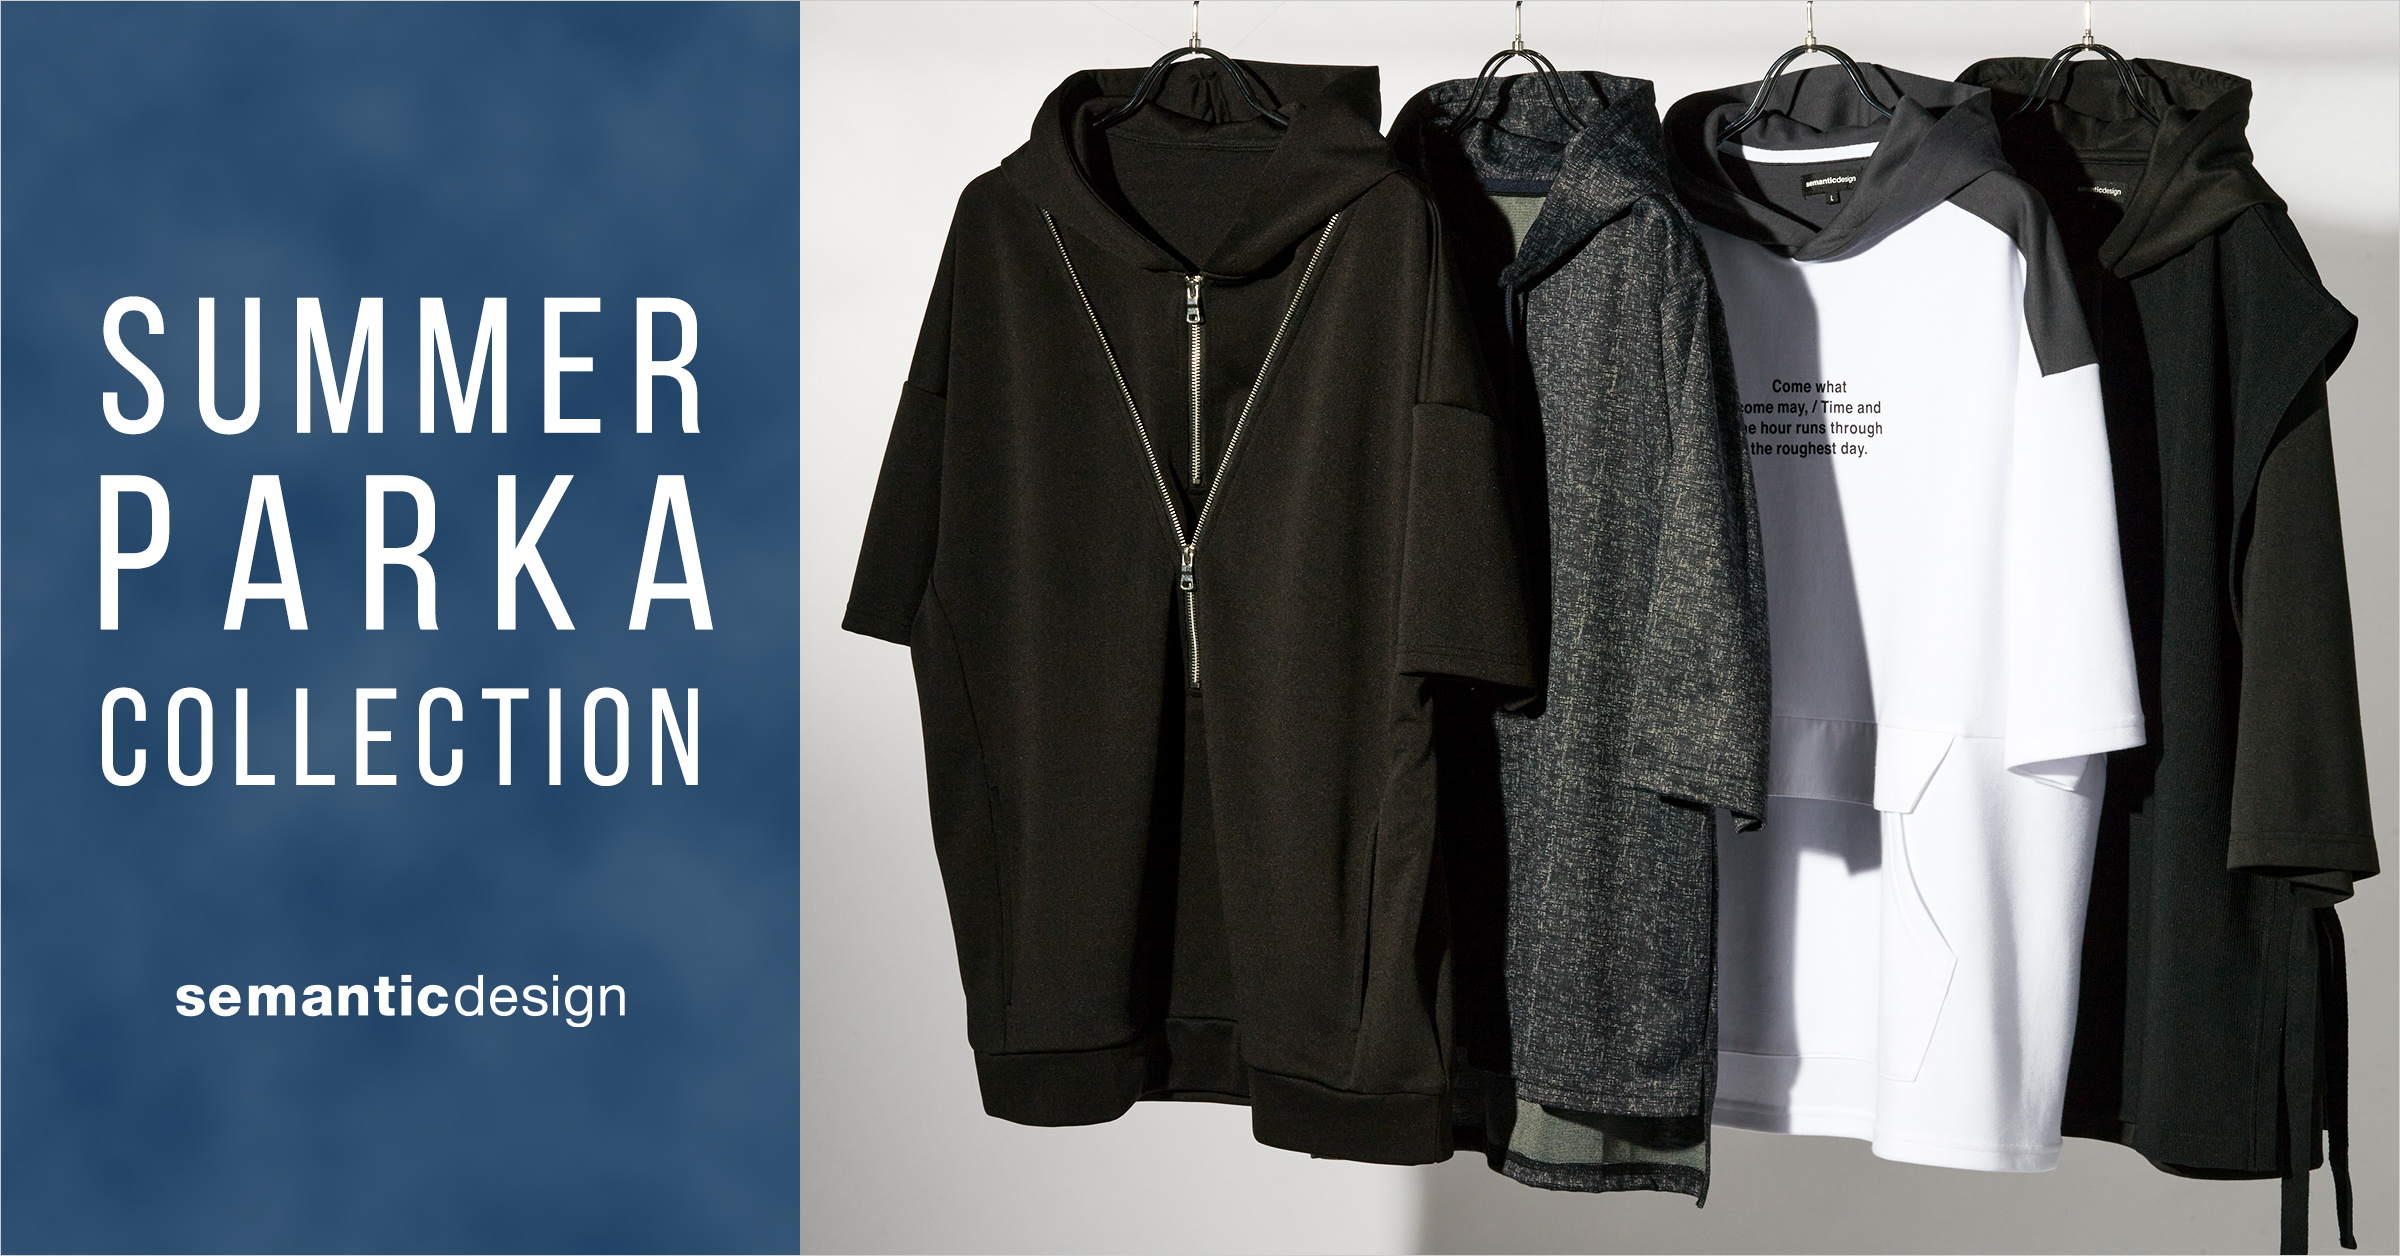 SUMMER PARKA COLLECTION